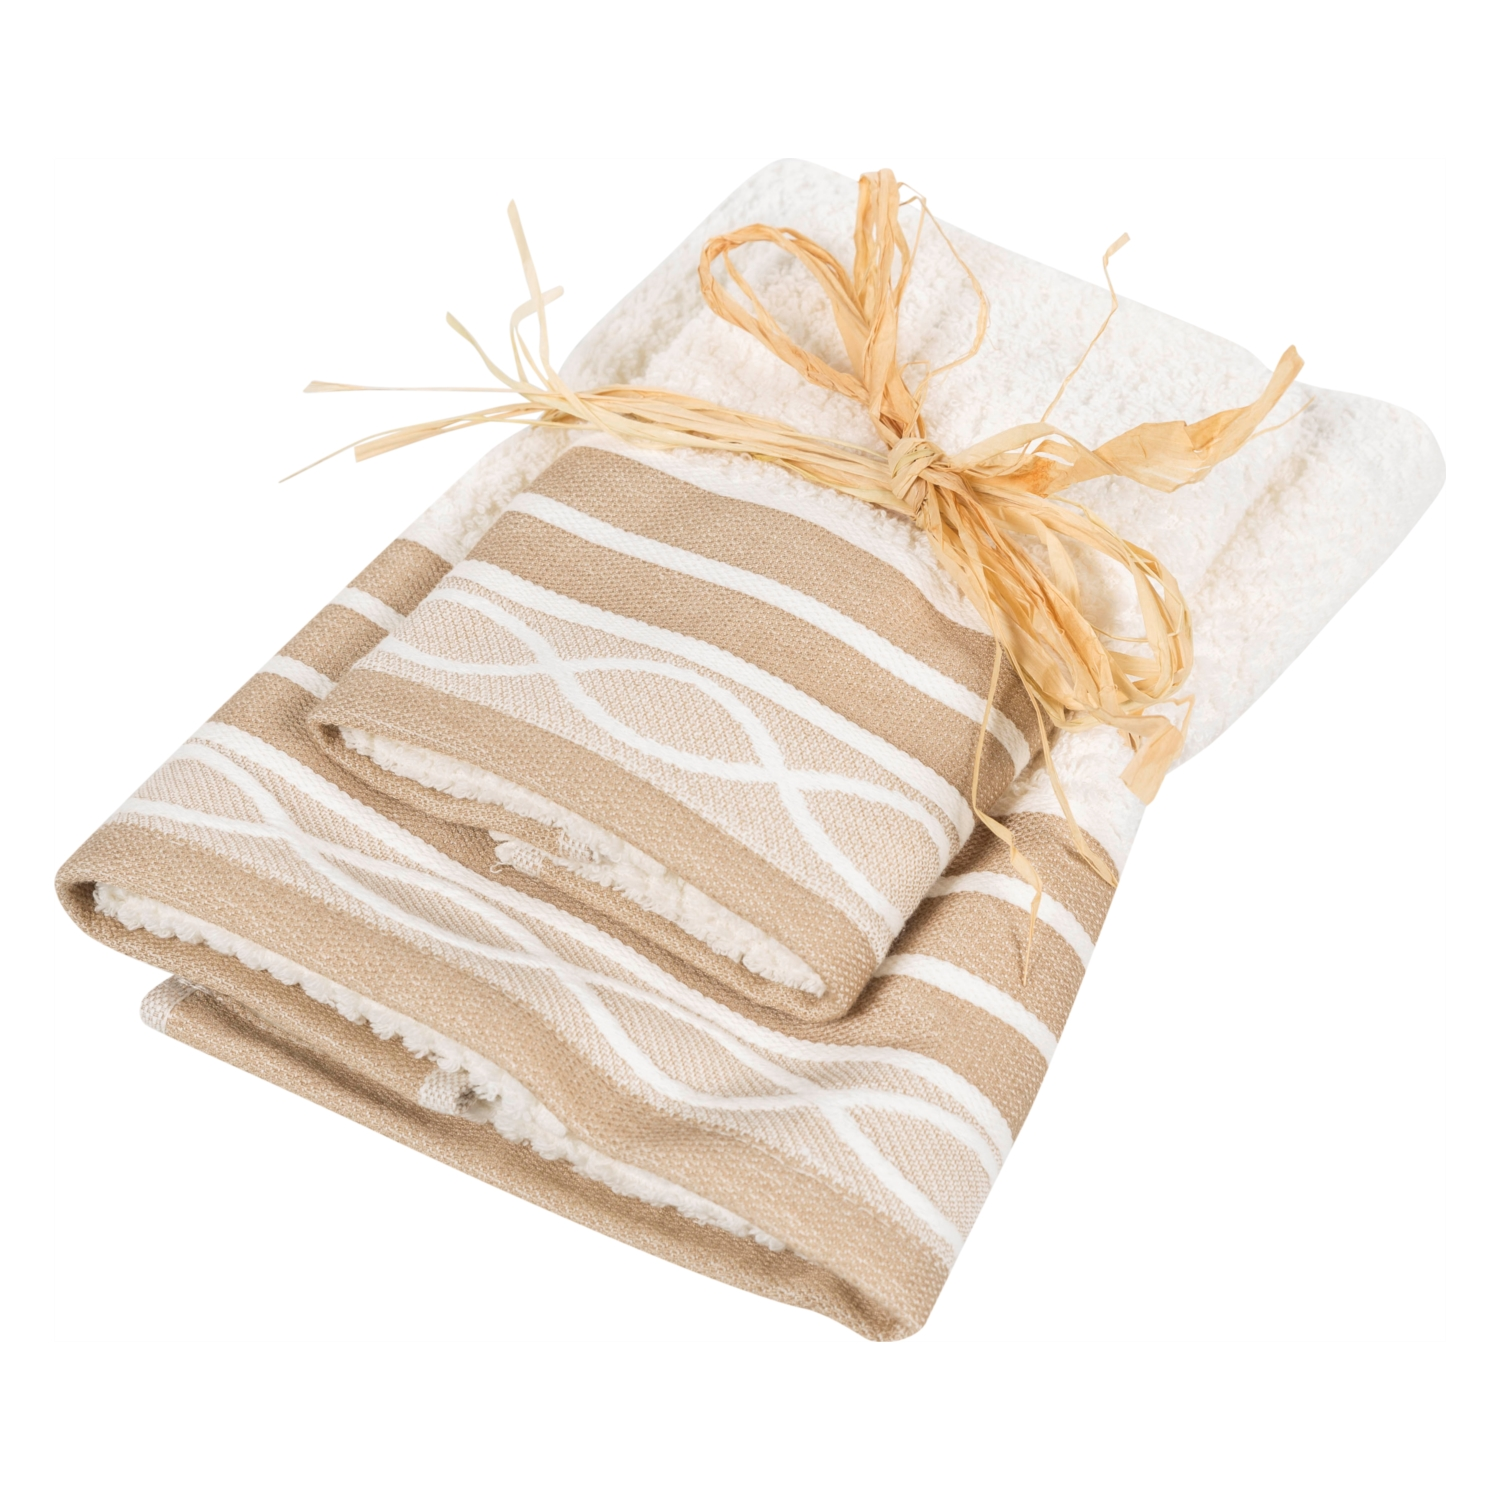 TOWEL SET BEIGE